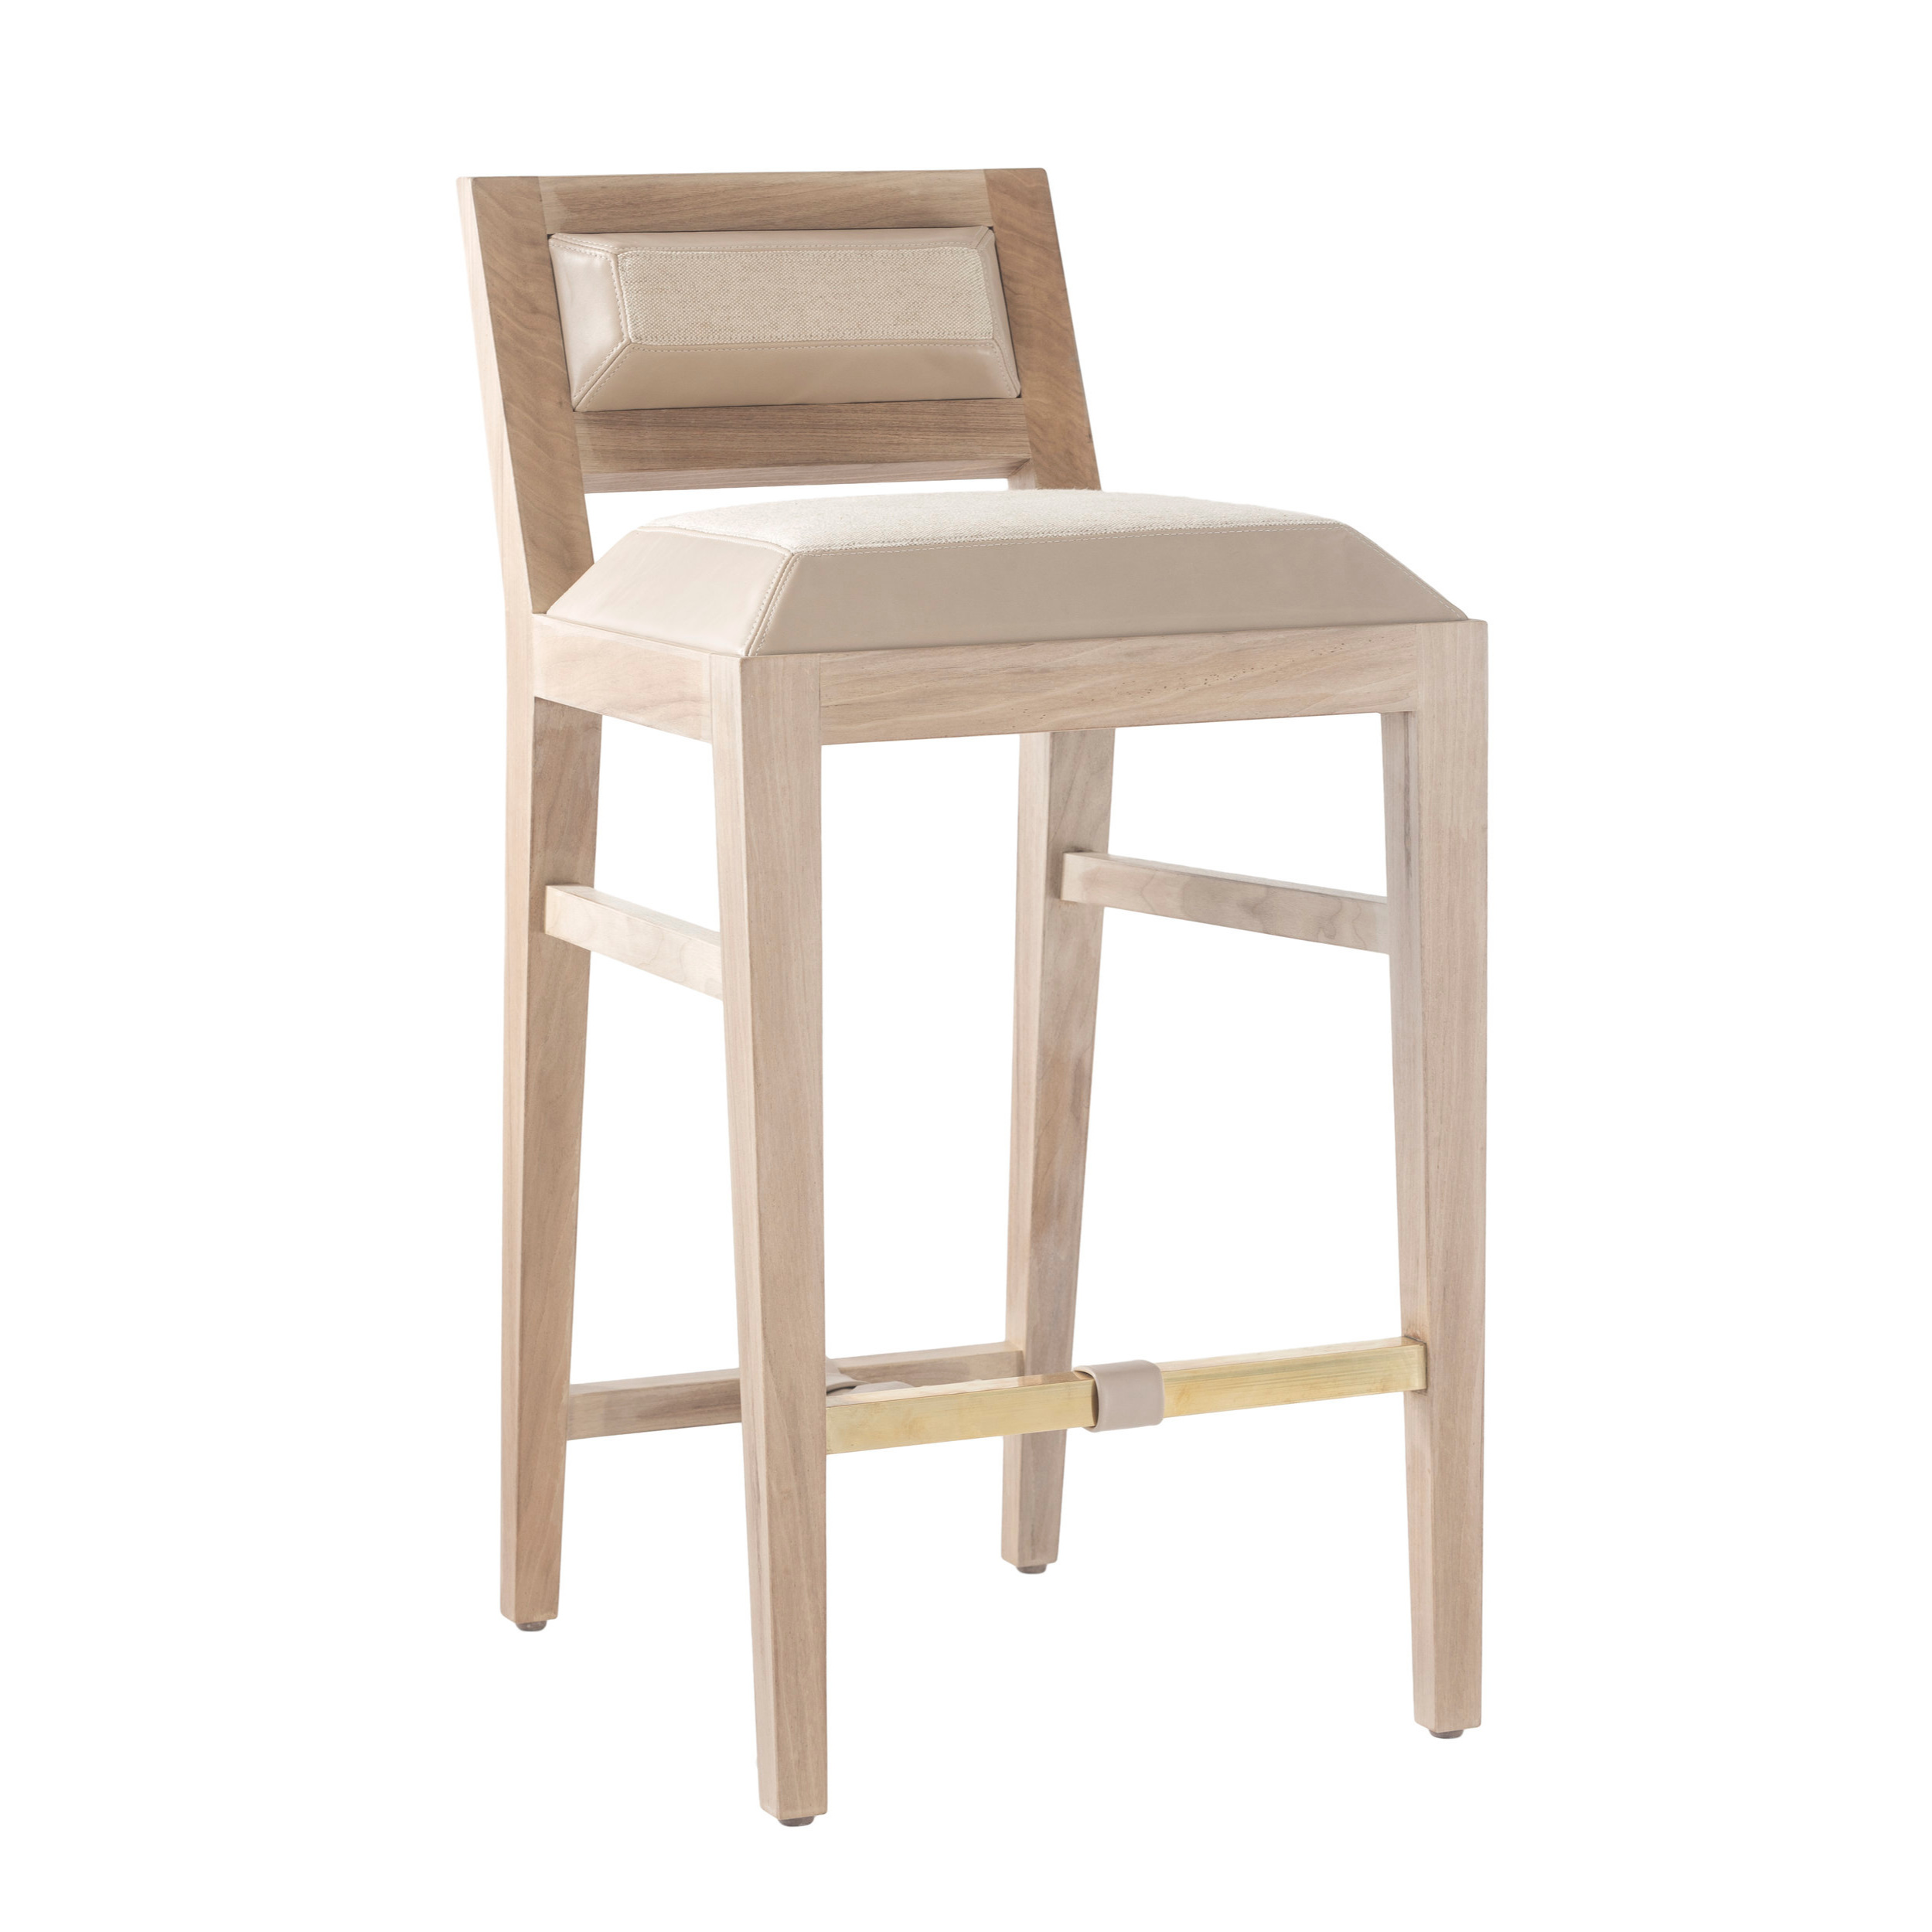 CHAIR - JP Counter Stool